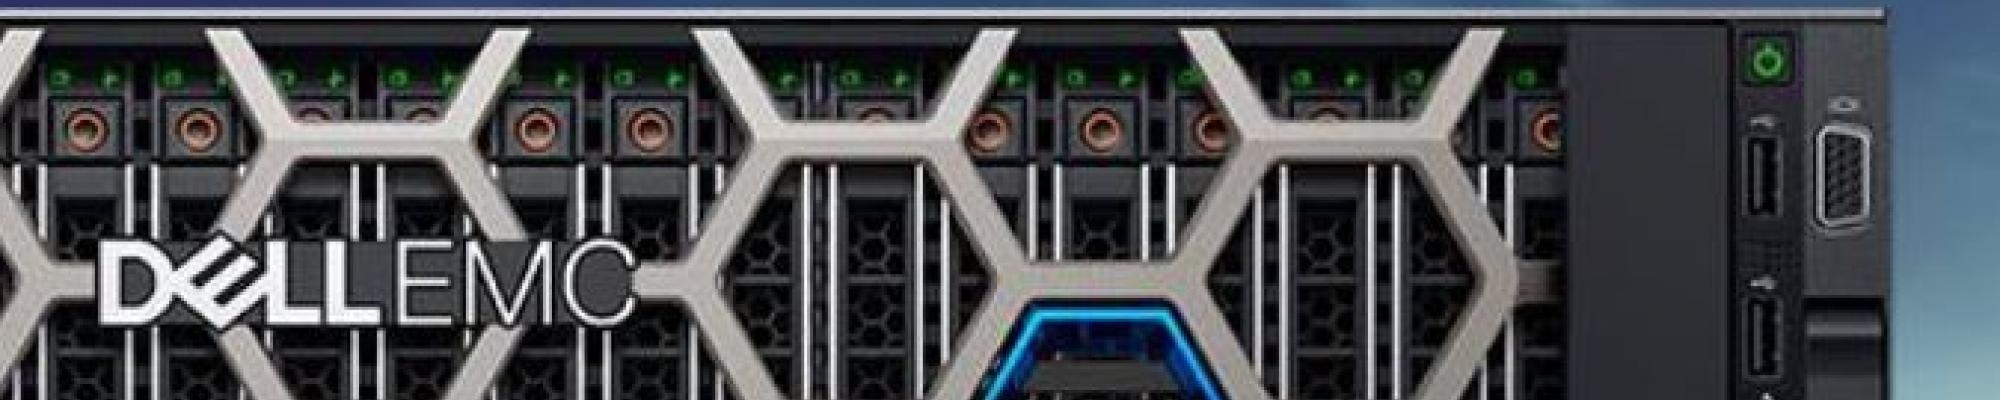 Dell EMC VxRail: total integration